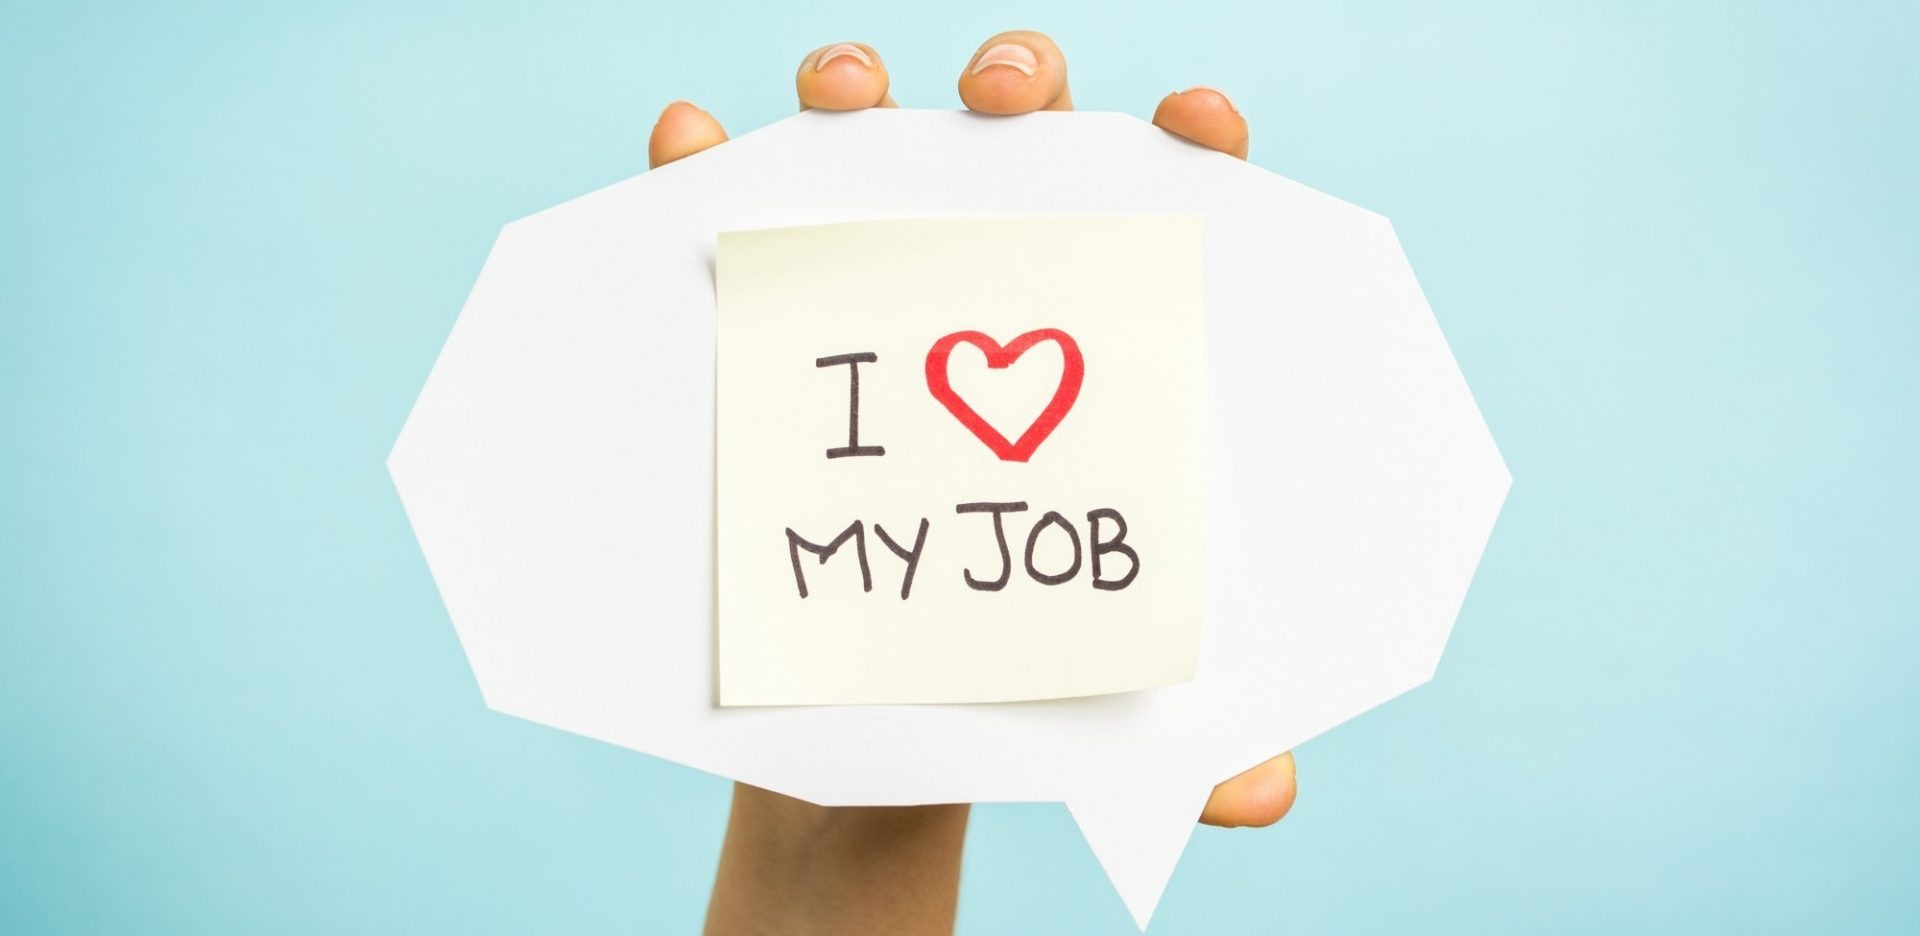 Job Satisfaction: Forgotten, But Still Important